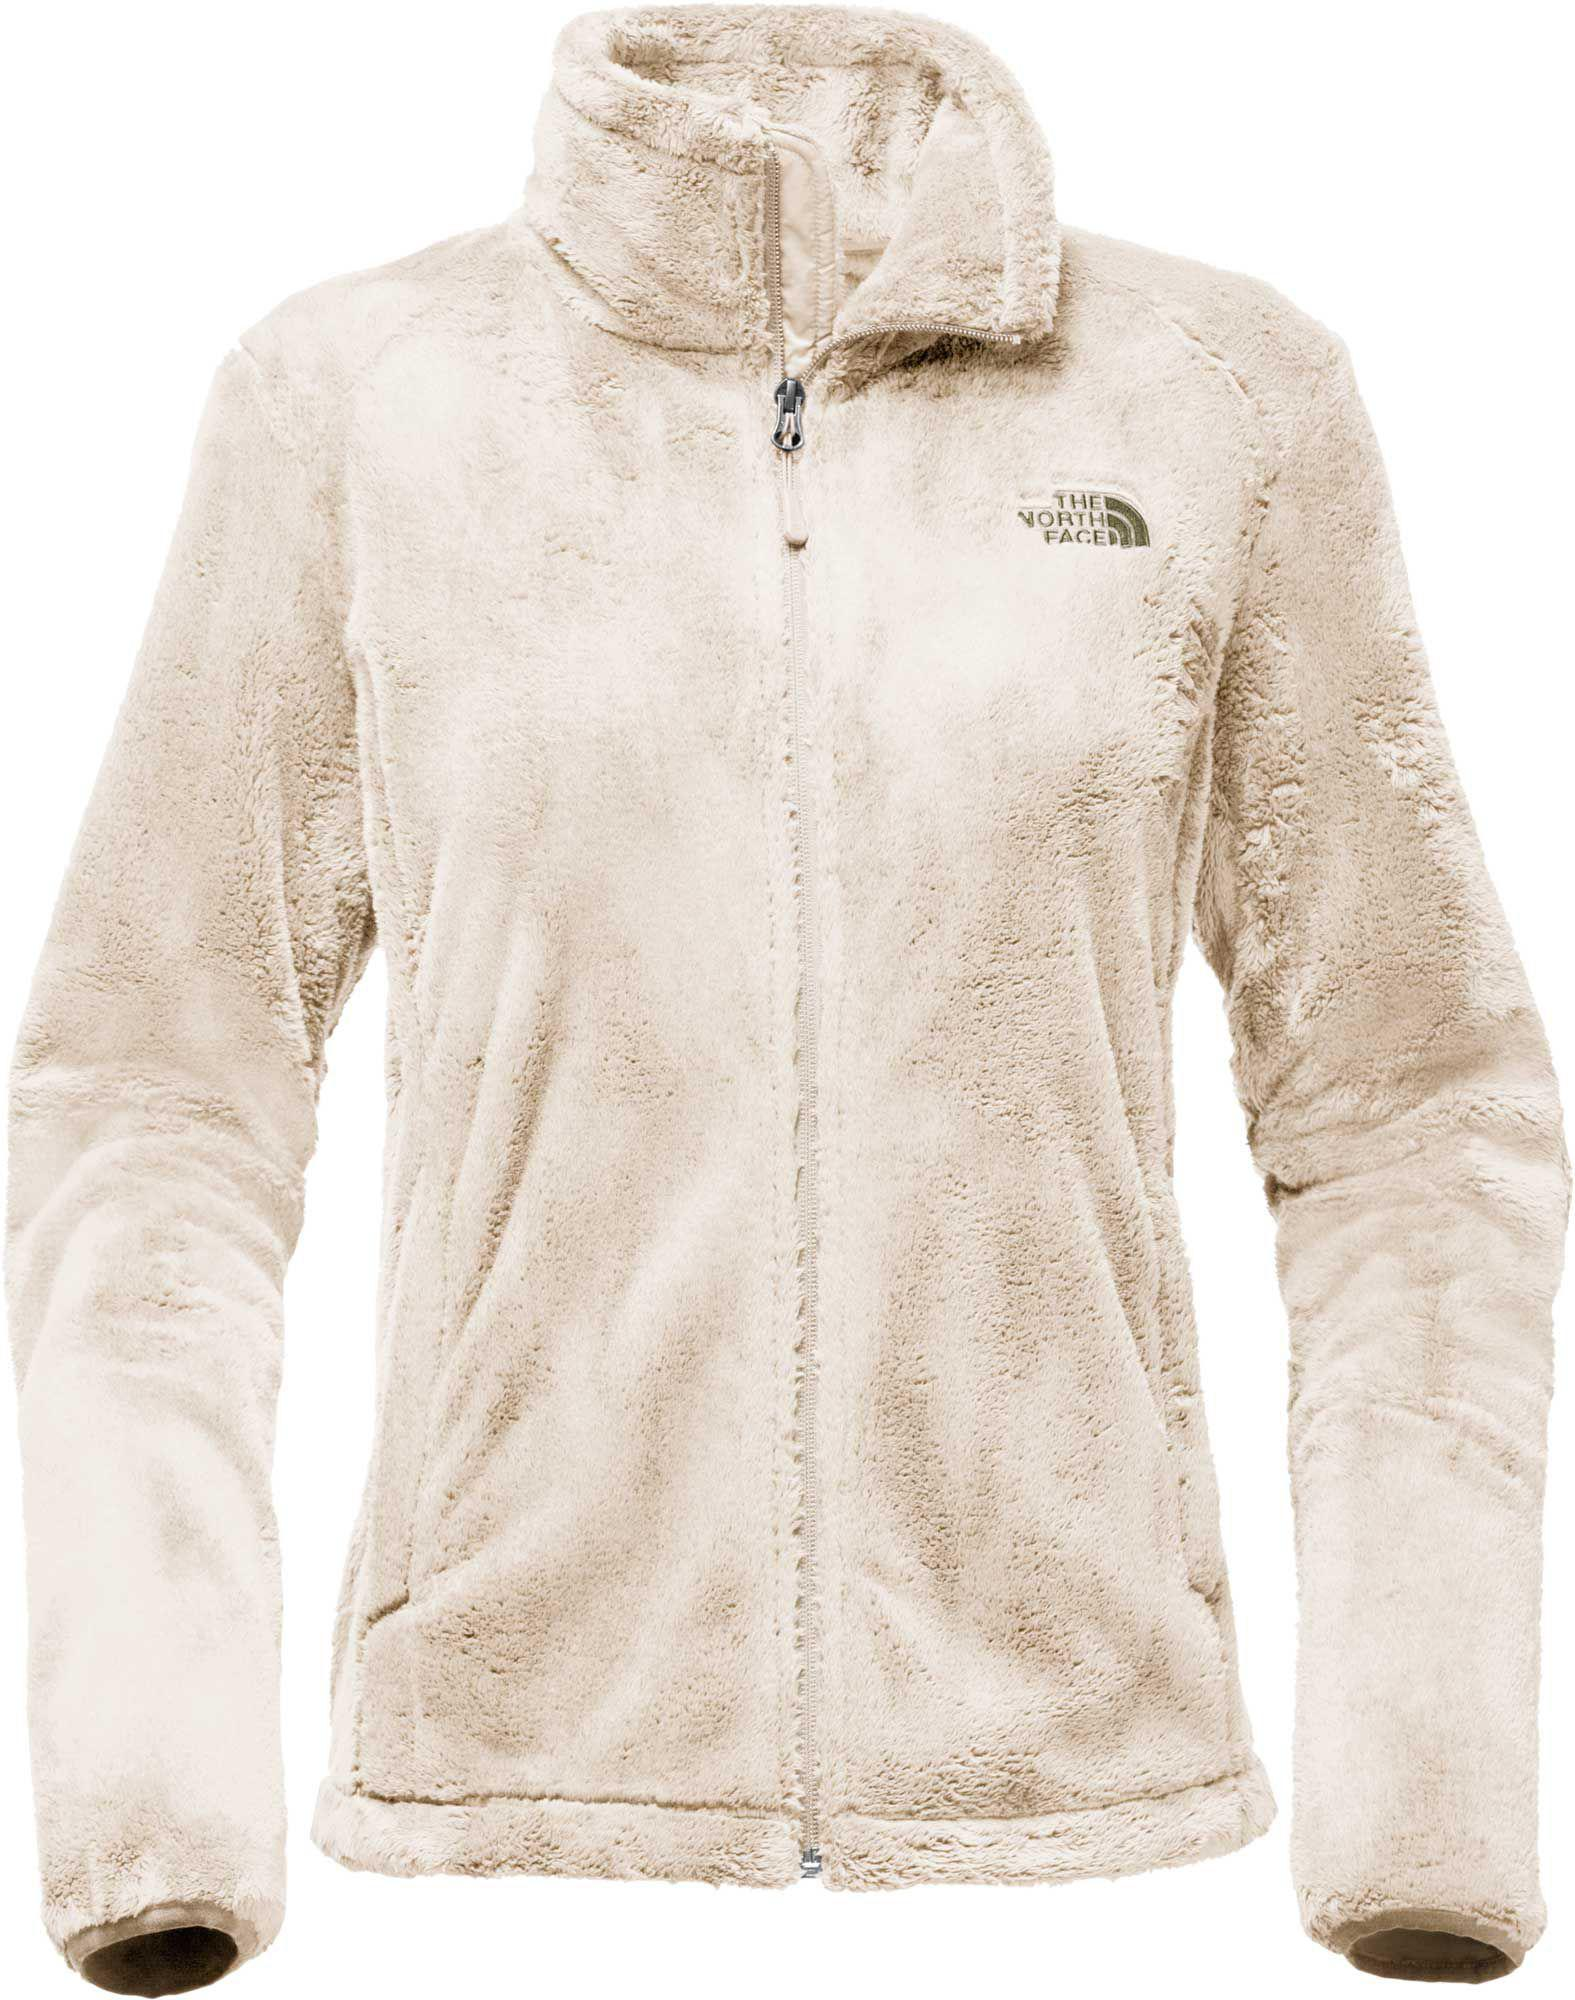 44ba5b07099 Lyst - The North Face Osito 2 Fleece Jacket in Natural